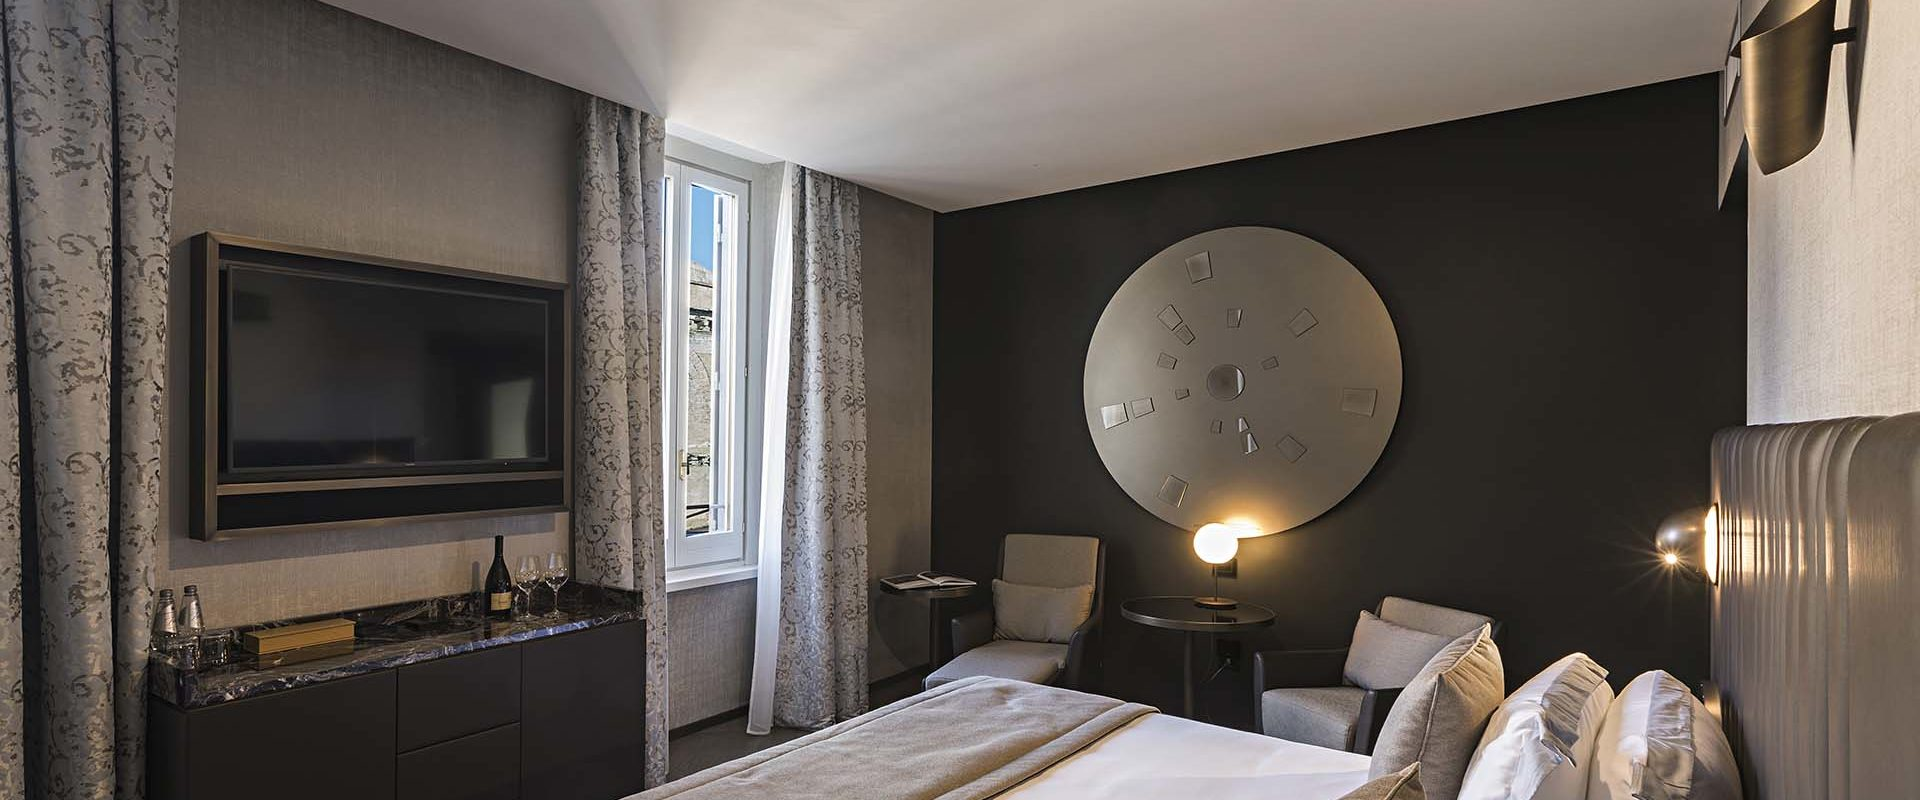 Bedroom of the Pantheon Suite at the Pantheon Icon Hotel